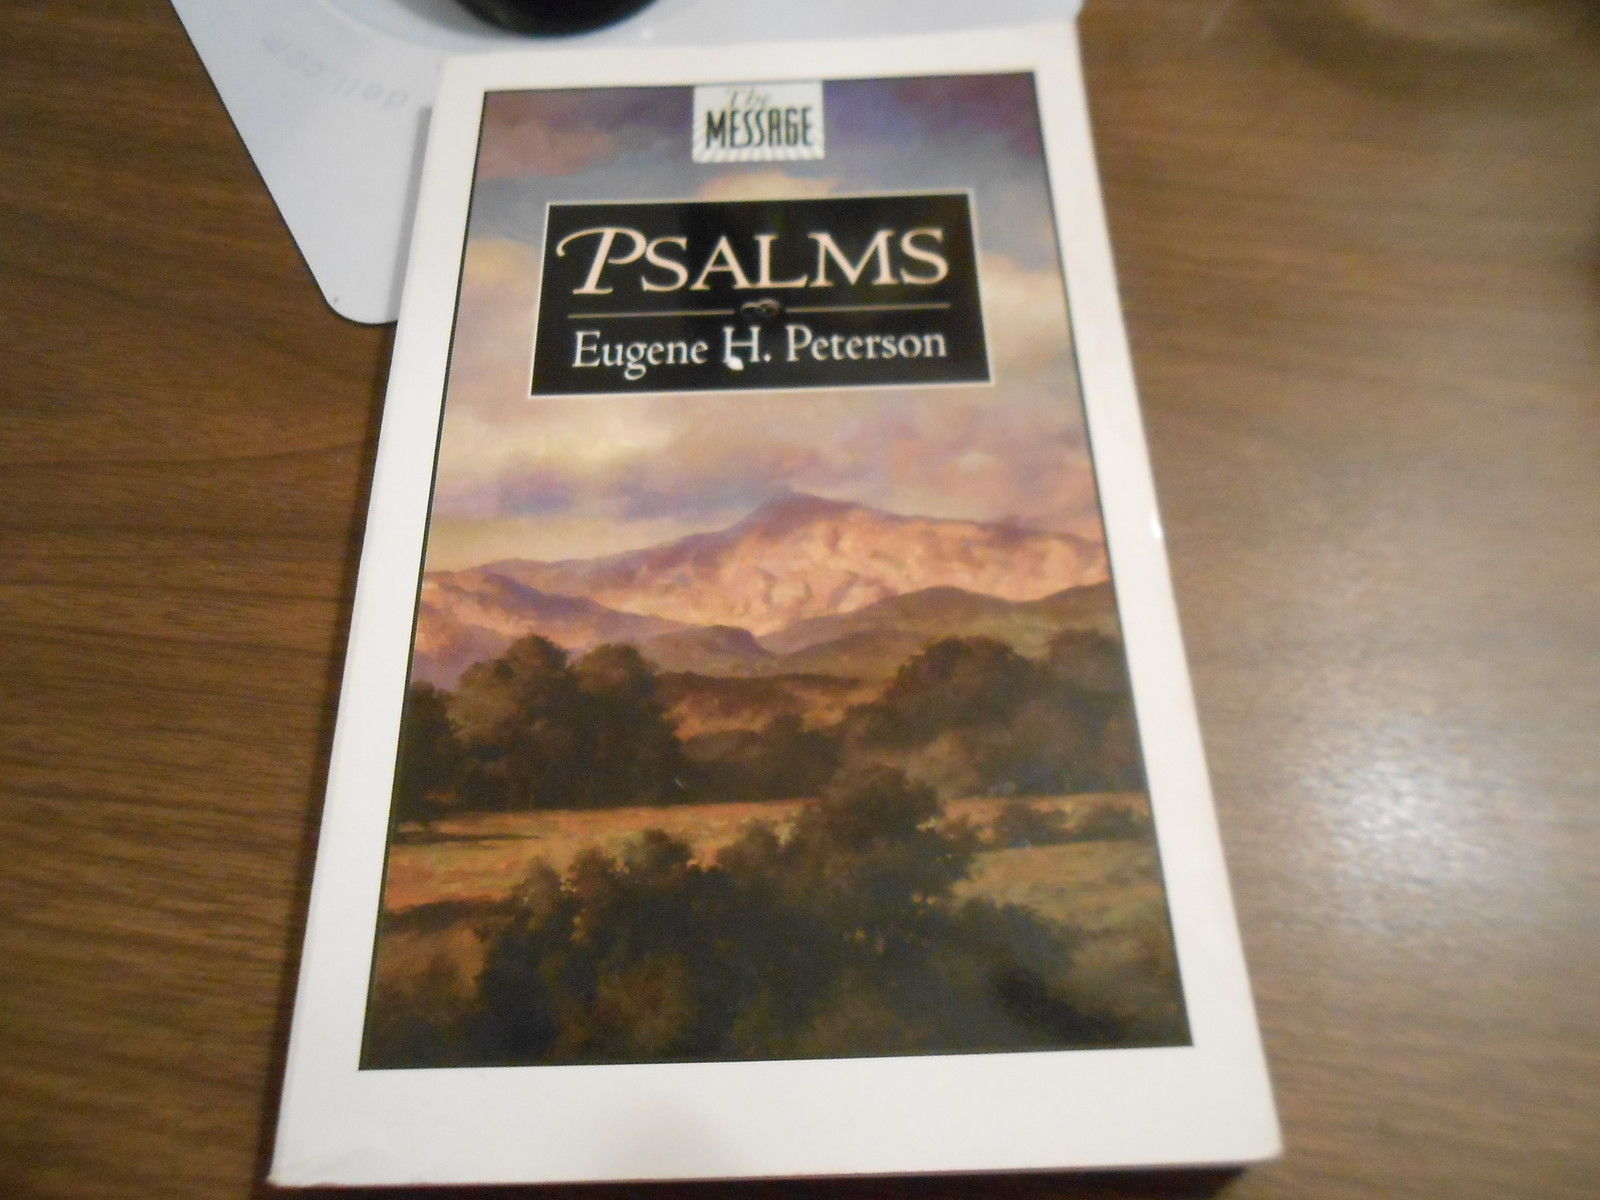 Primary image for The Message : Psalms (1999, softcover) read the psalms again 4 the very 1st time